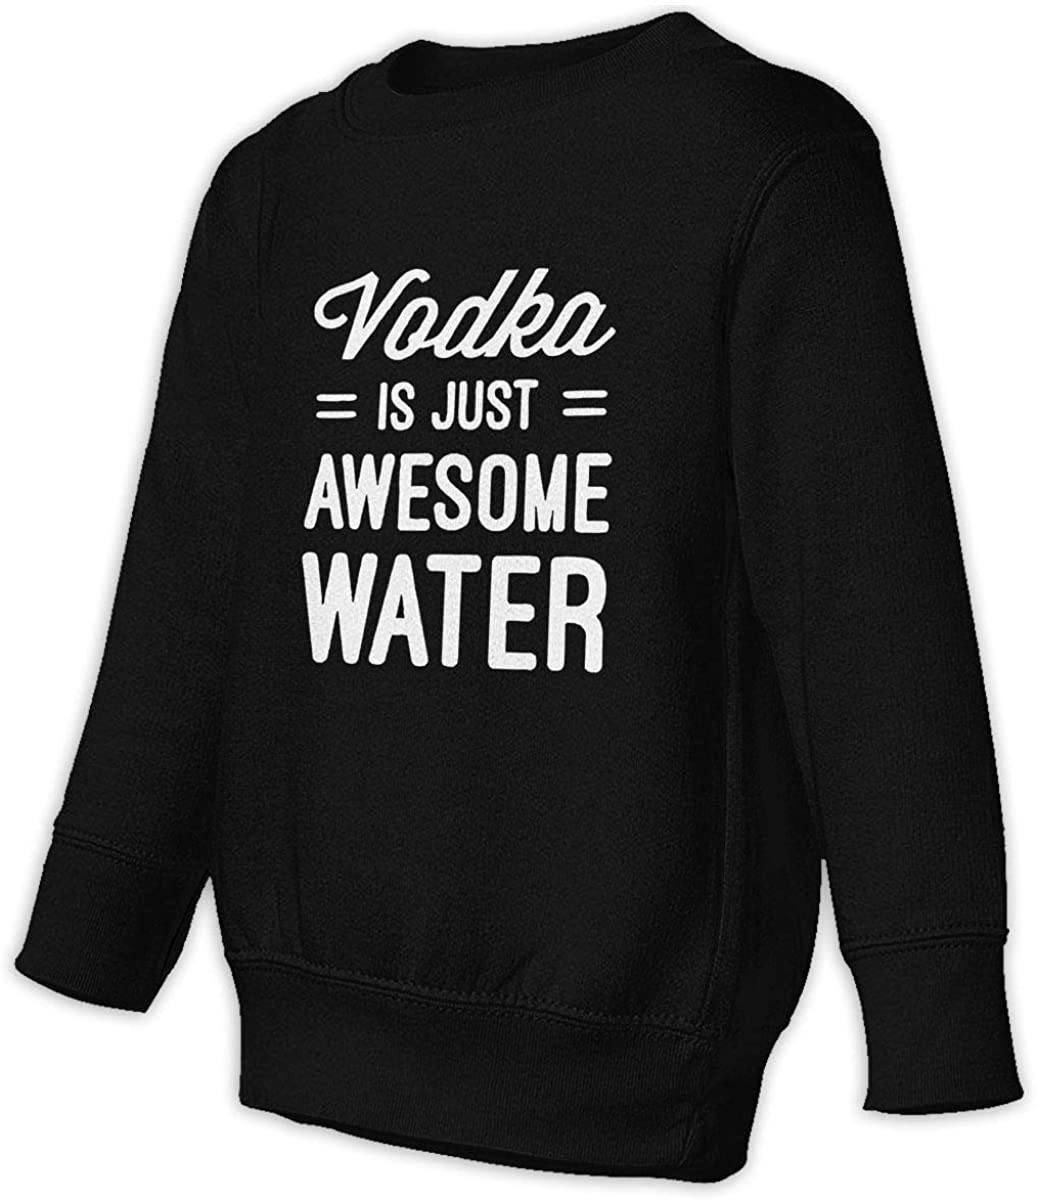 wudici Vodka is Just Awesome Water Boys Girls Pullover Sweaters Crewneck Sweatshirts Clothes for 2-6 Years Old Children